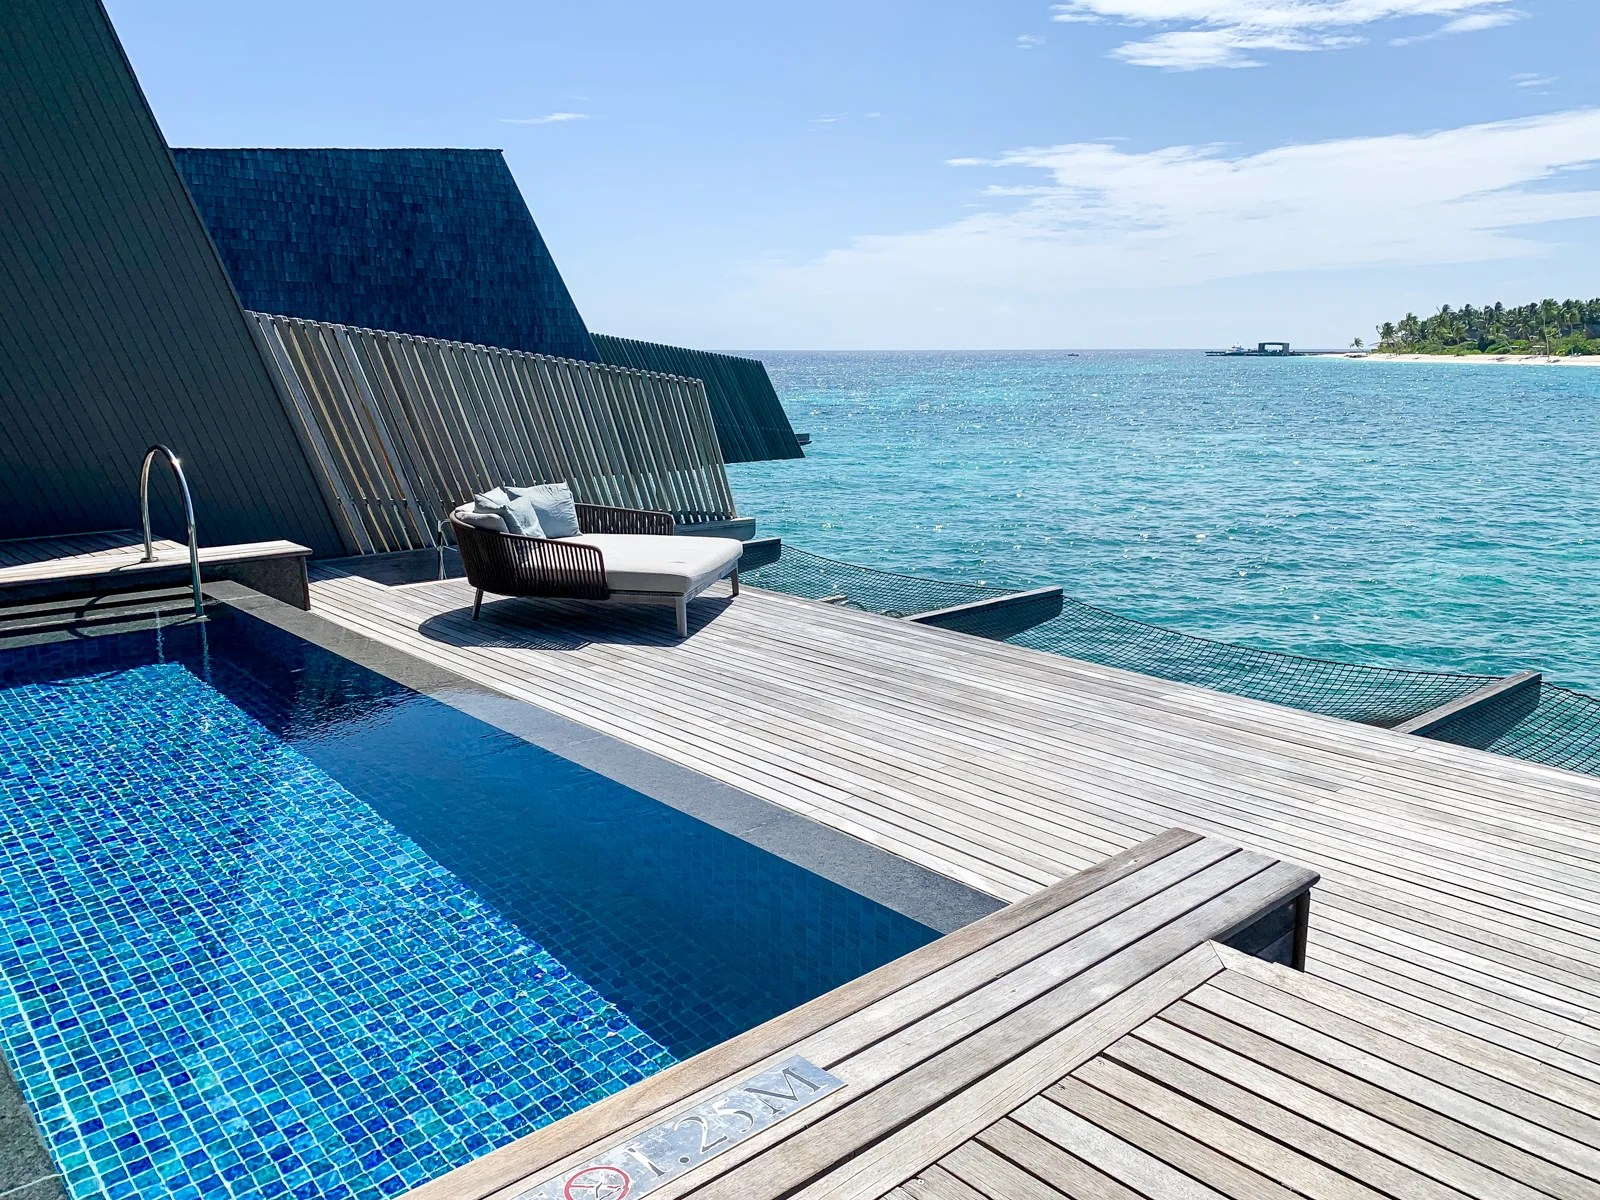 Enjoy free breakfast and dinner when staying at the St. Regis Maldives in May 2020